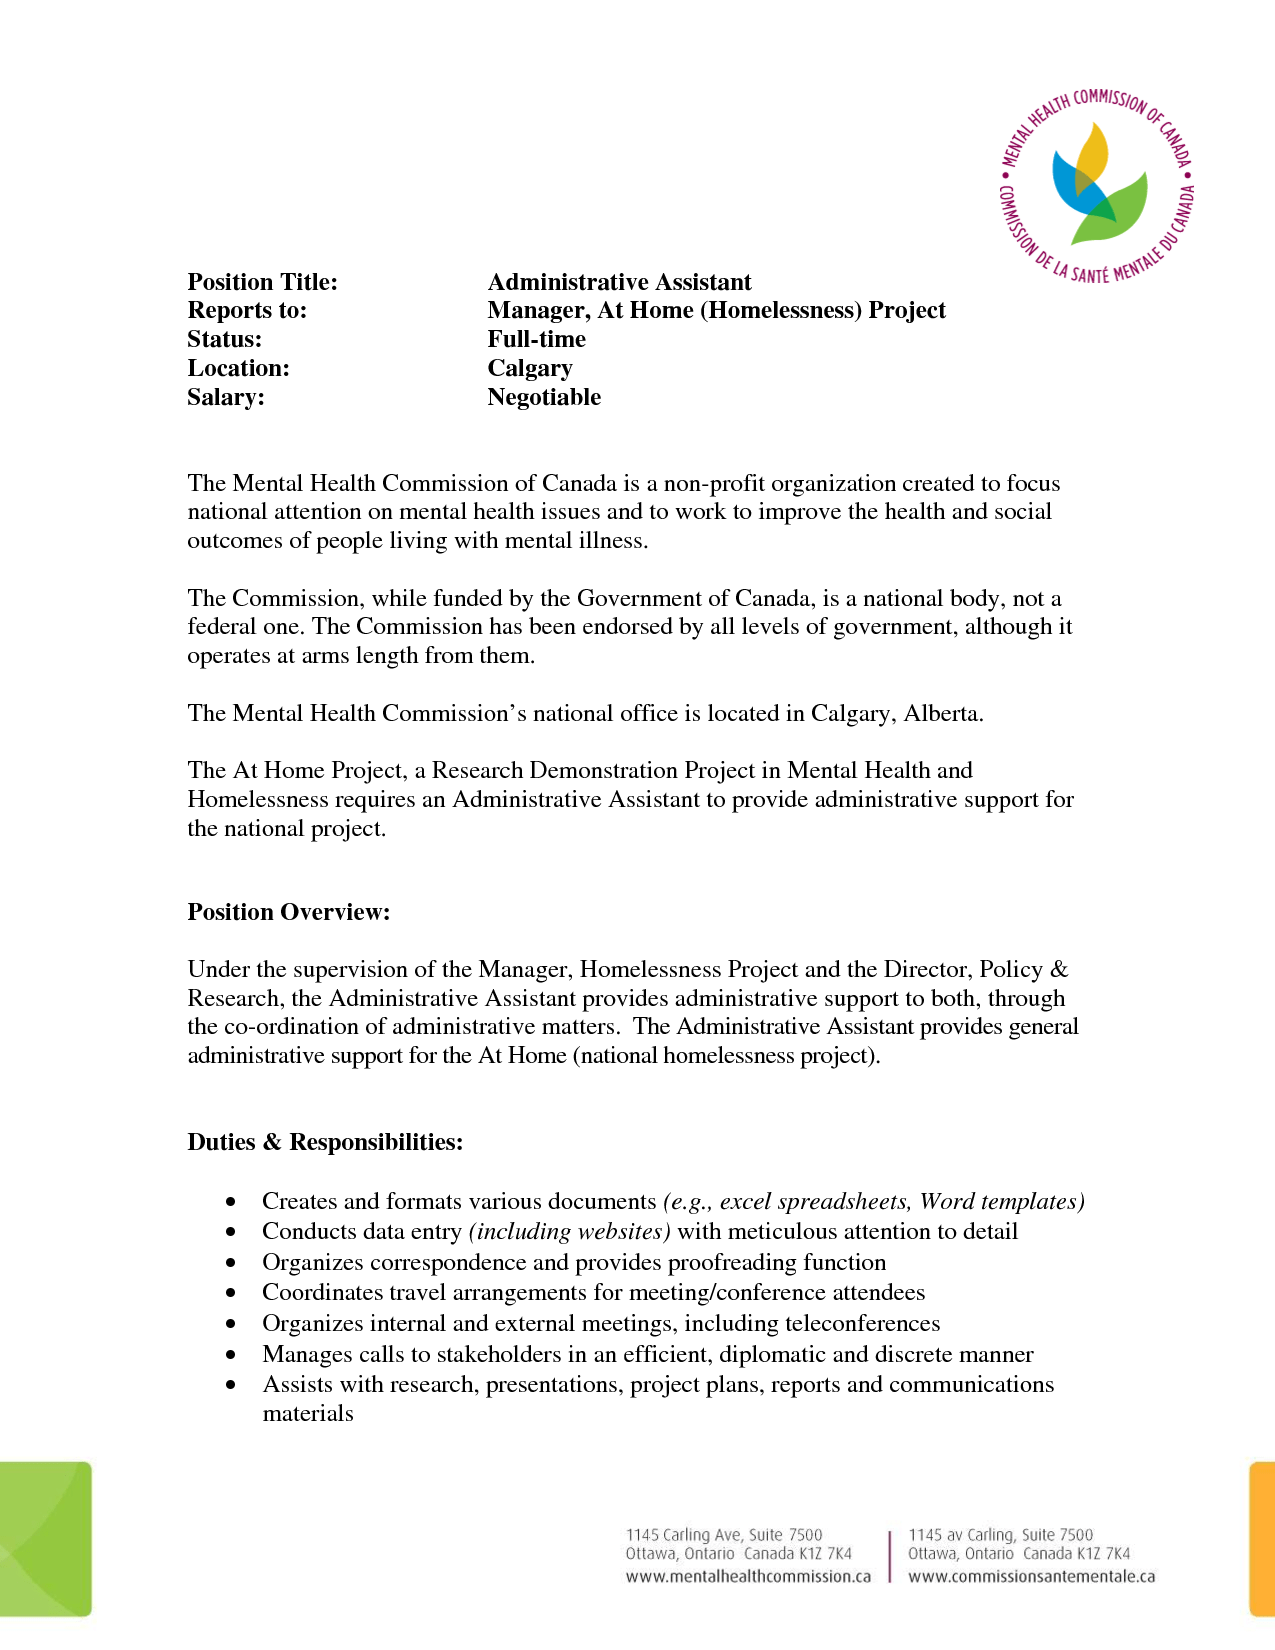 Administrative Assistant Resume Summary Resume Examples For Administrative Assistant Positions